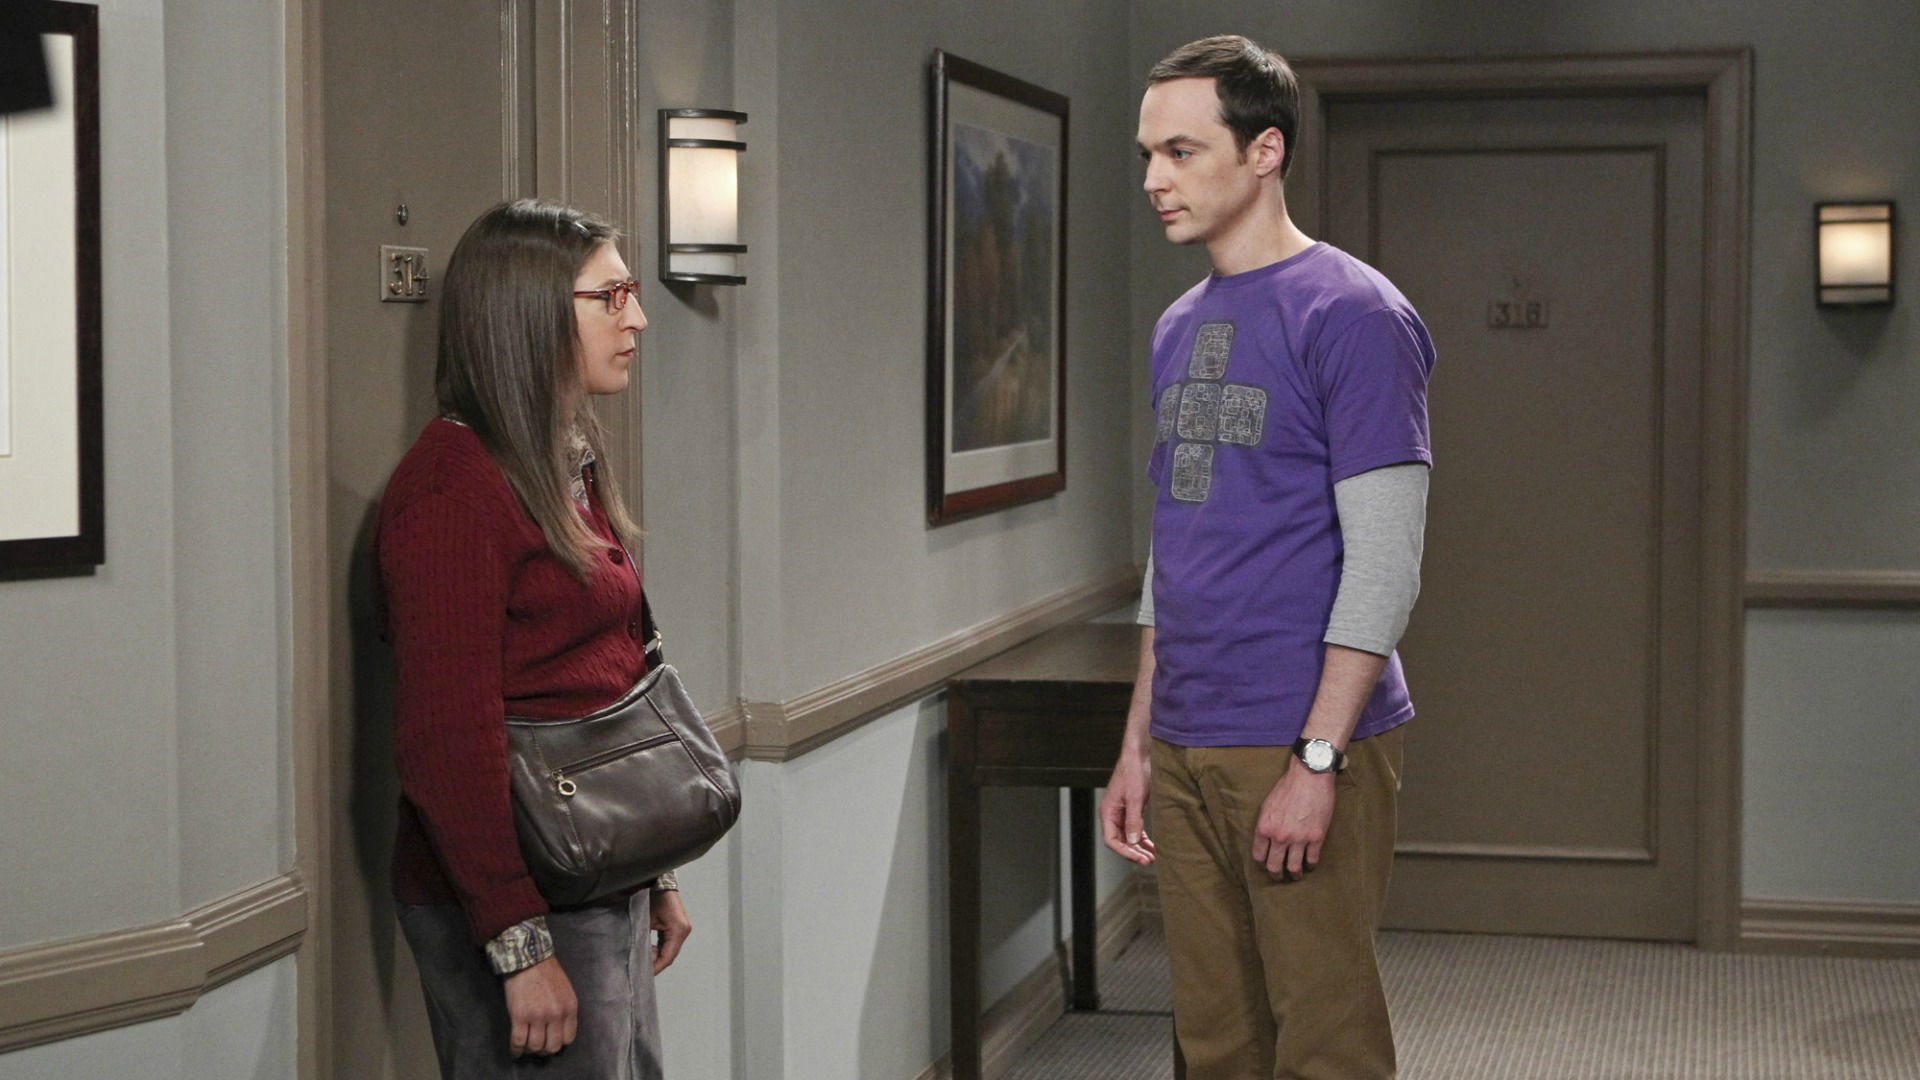 3. We cried when Amy and Sheldon broke up